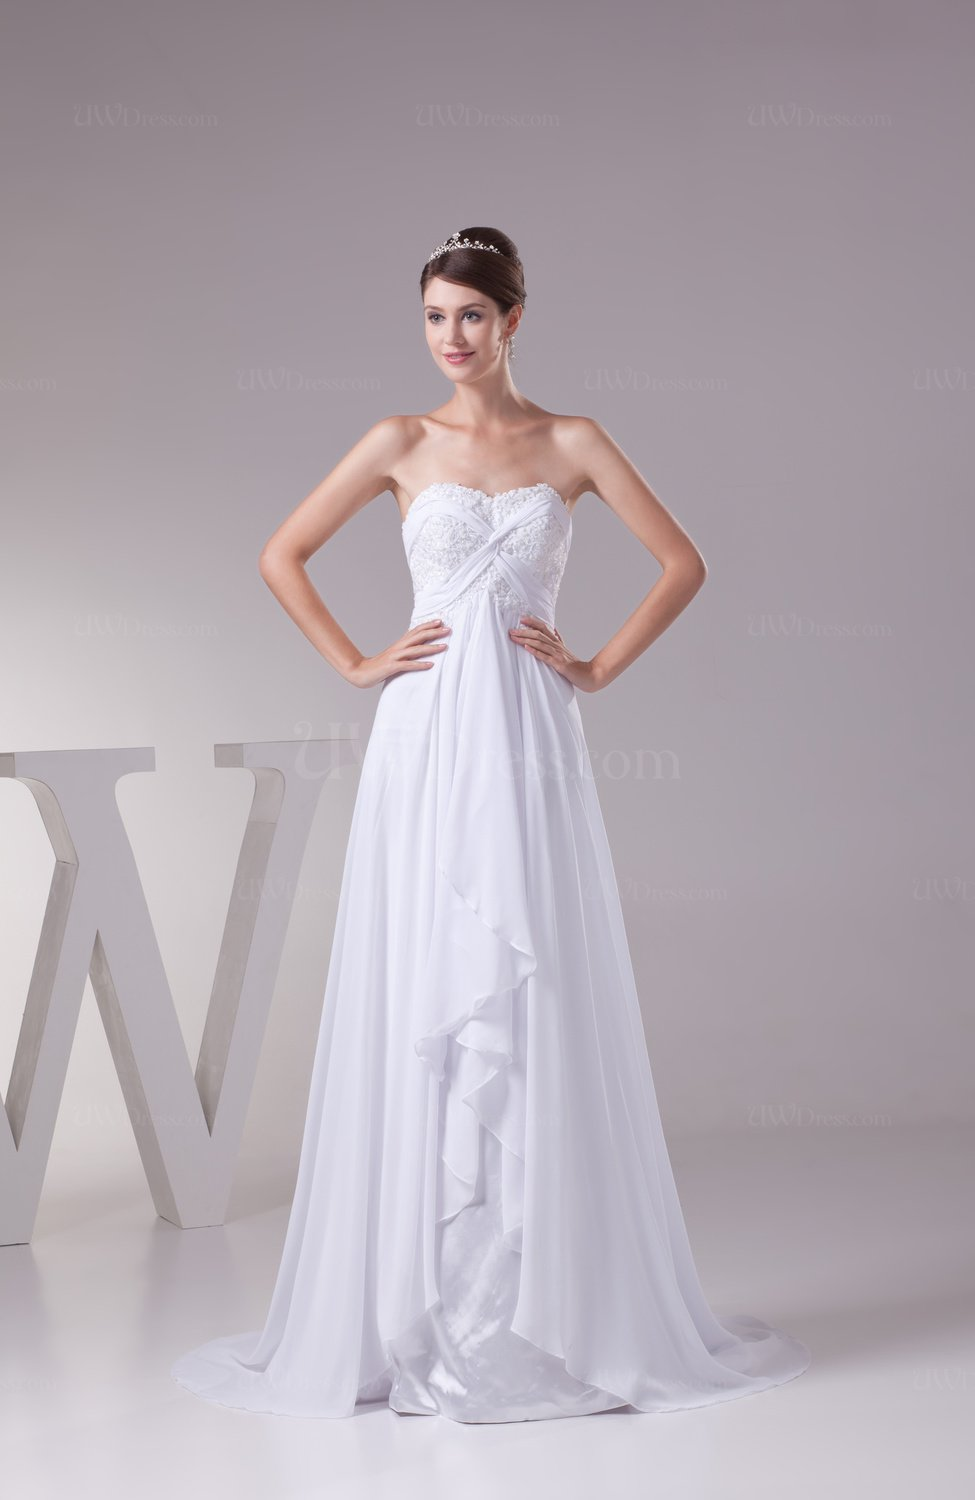 White Romantic Garden A Line Backless Chiffon Appliques